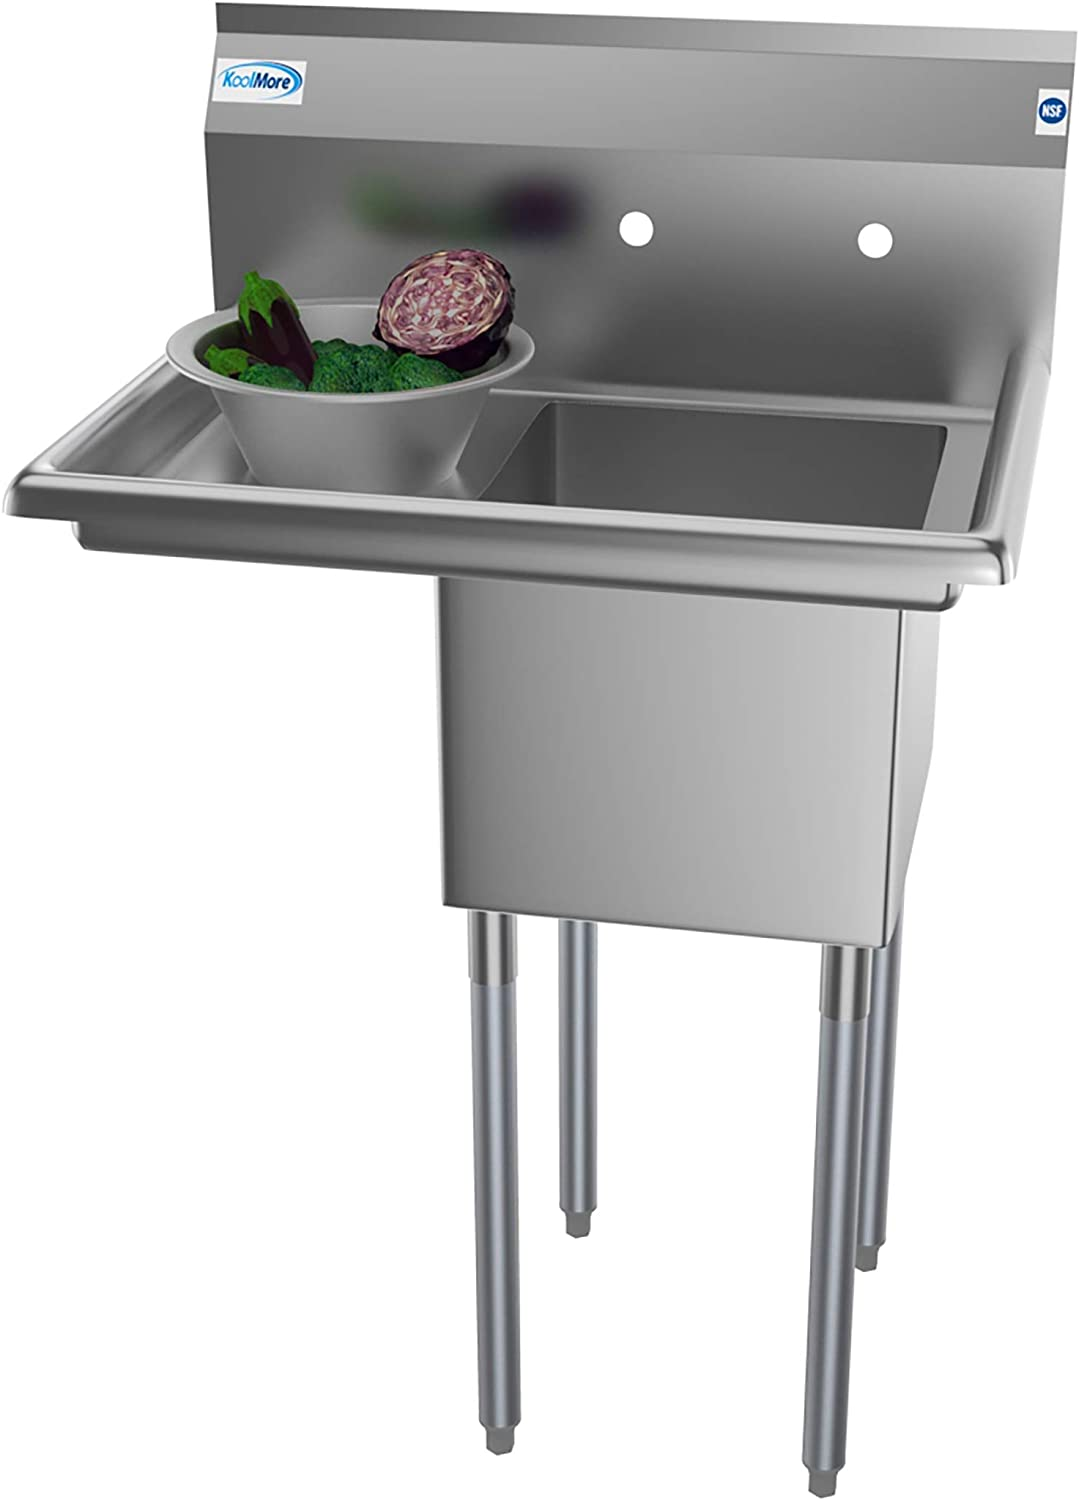 KoolMore 1 Compartment Stainless Steel Free shipping / New Quality inspection NSF Kitchen Pr Commercial